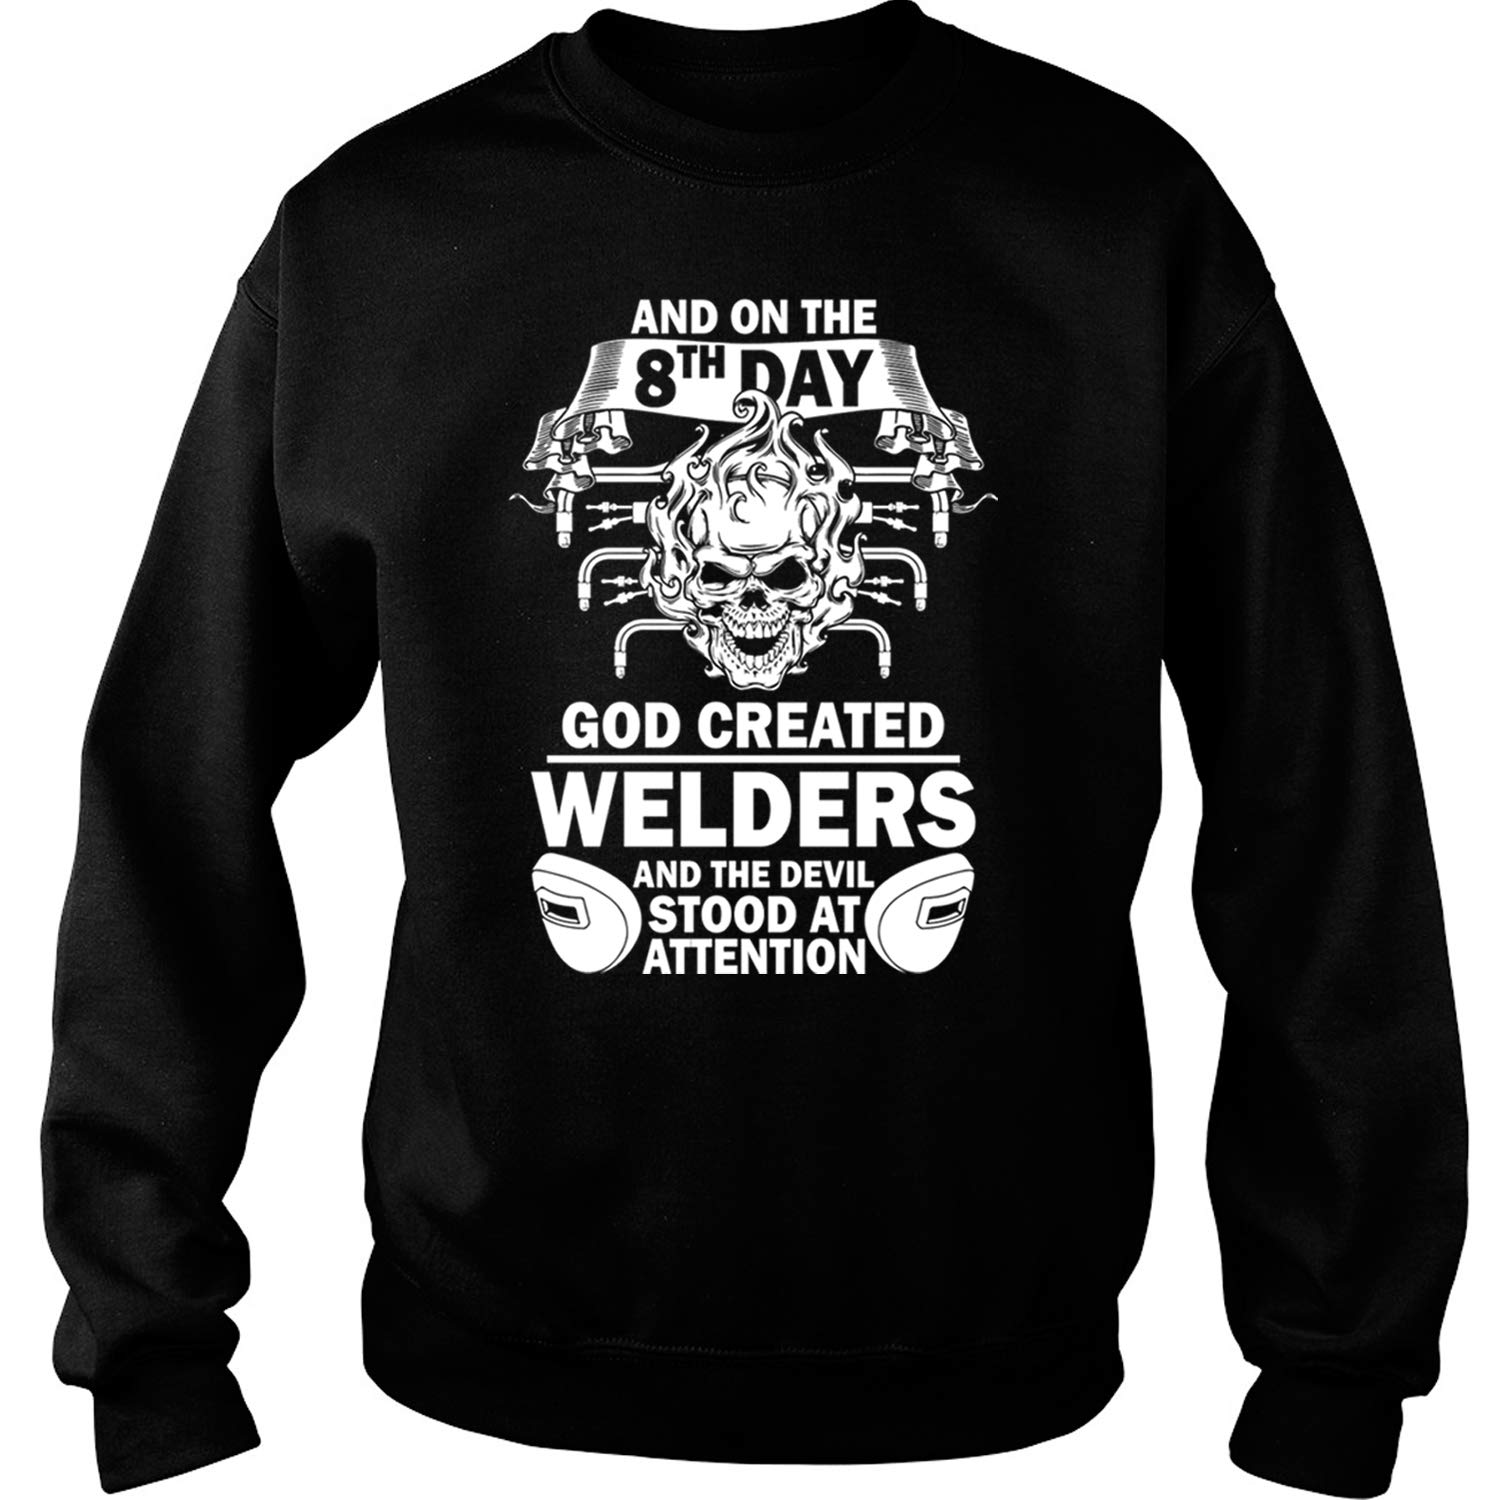 God Created Welders S And On The 8th Day T Shirt 6899